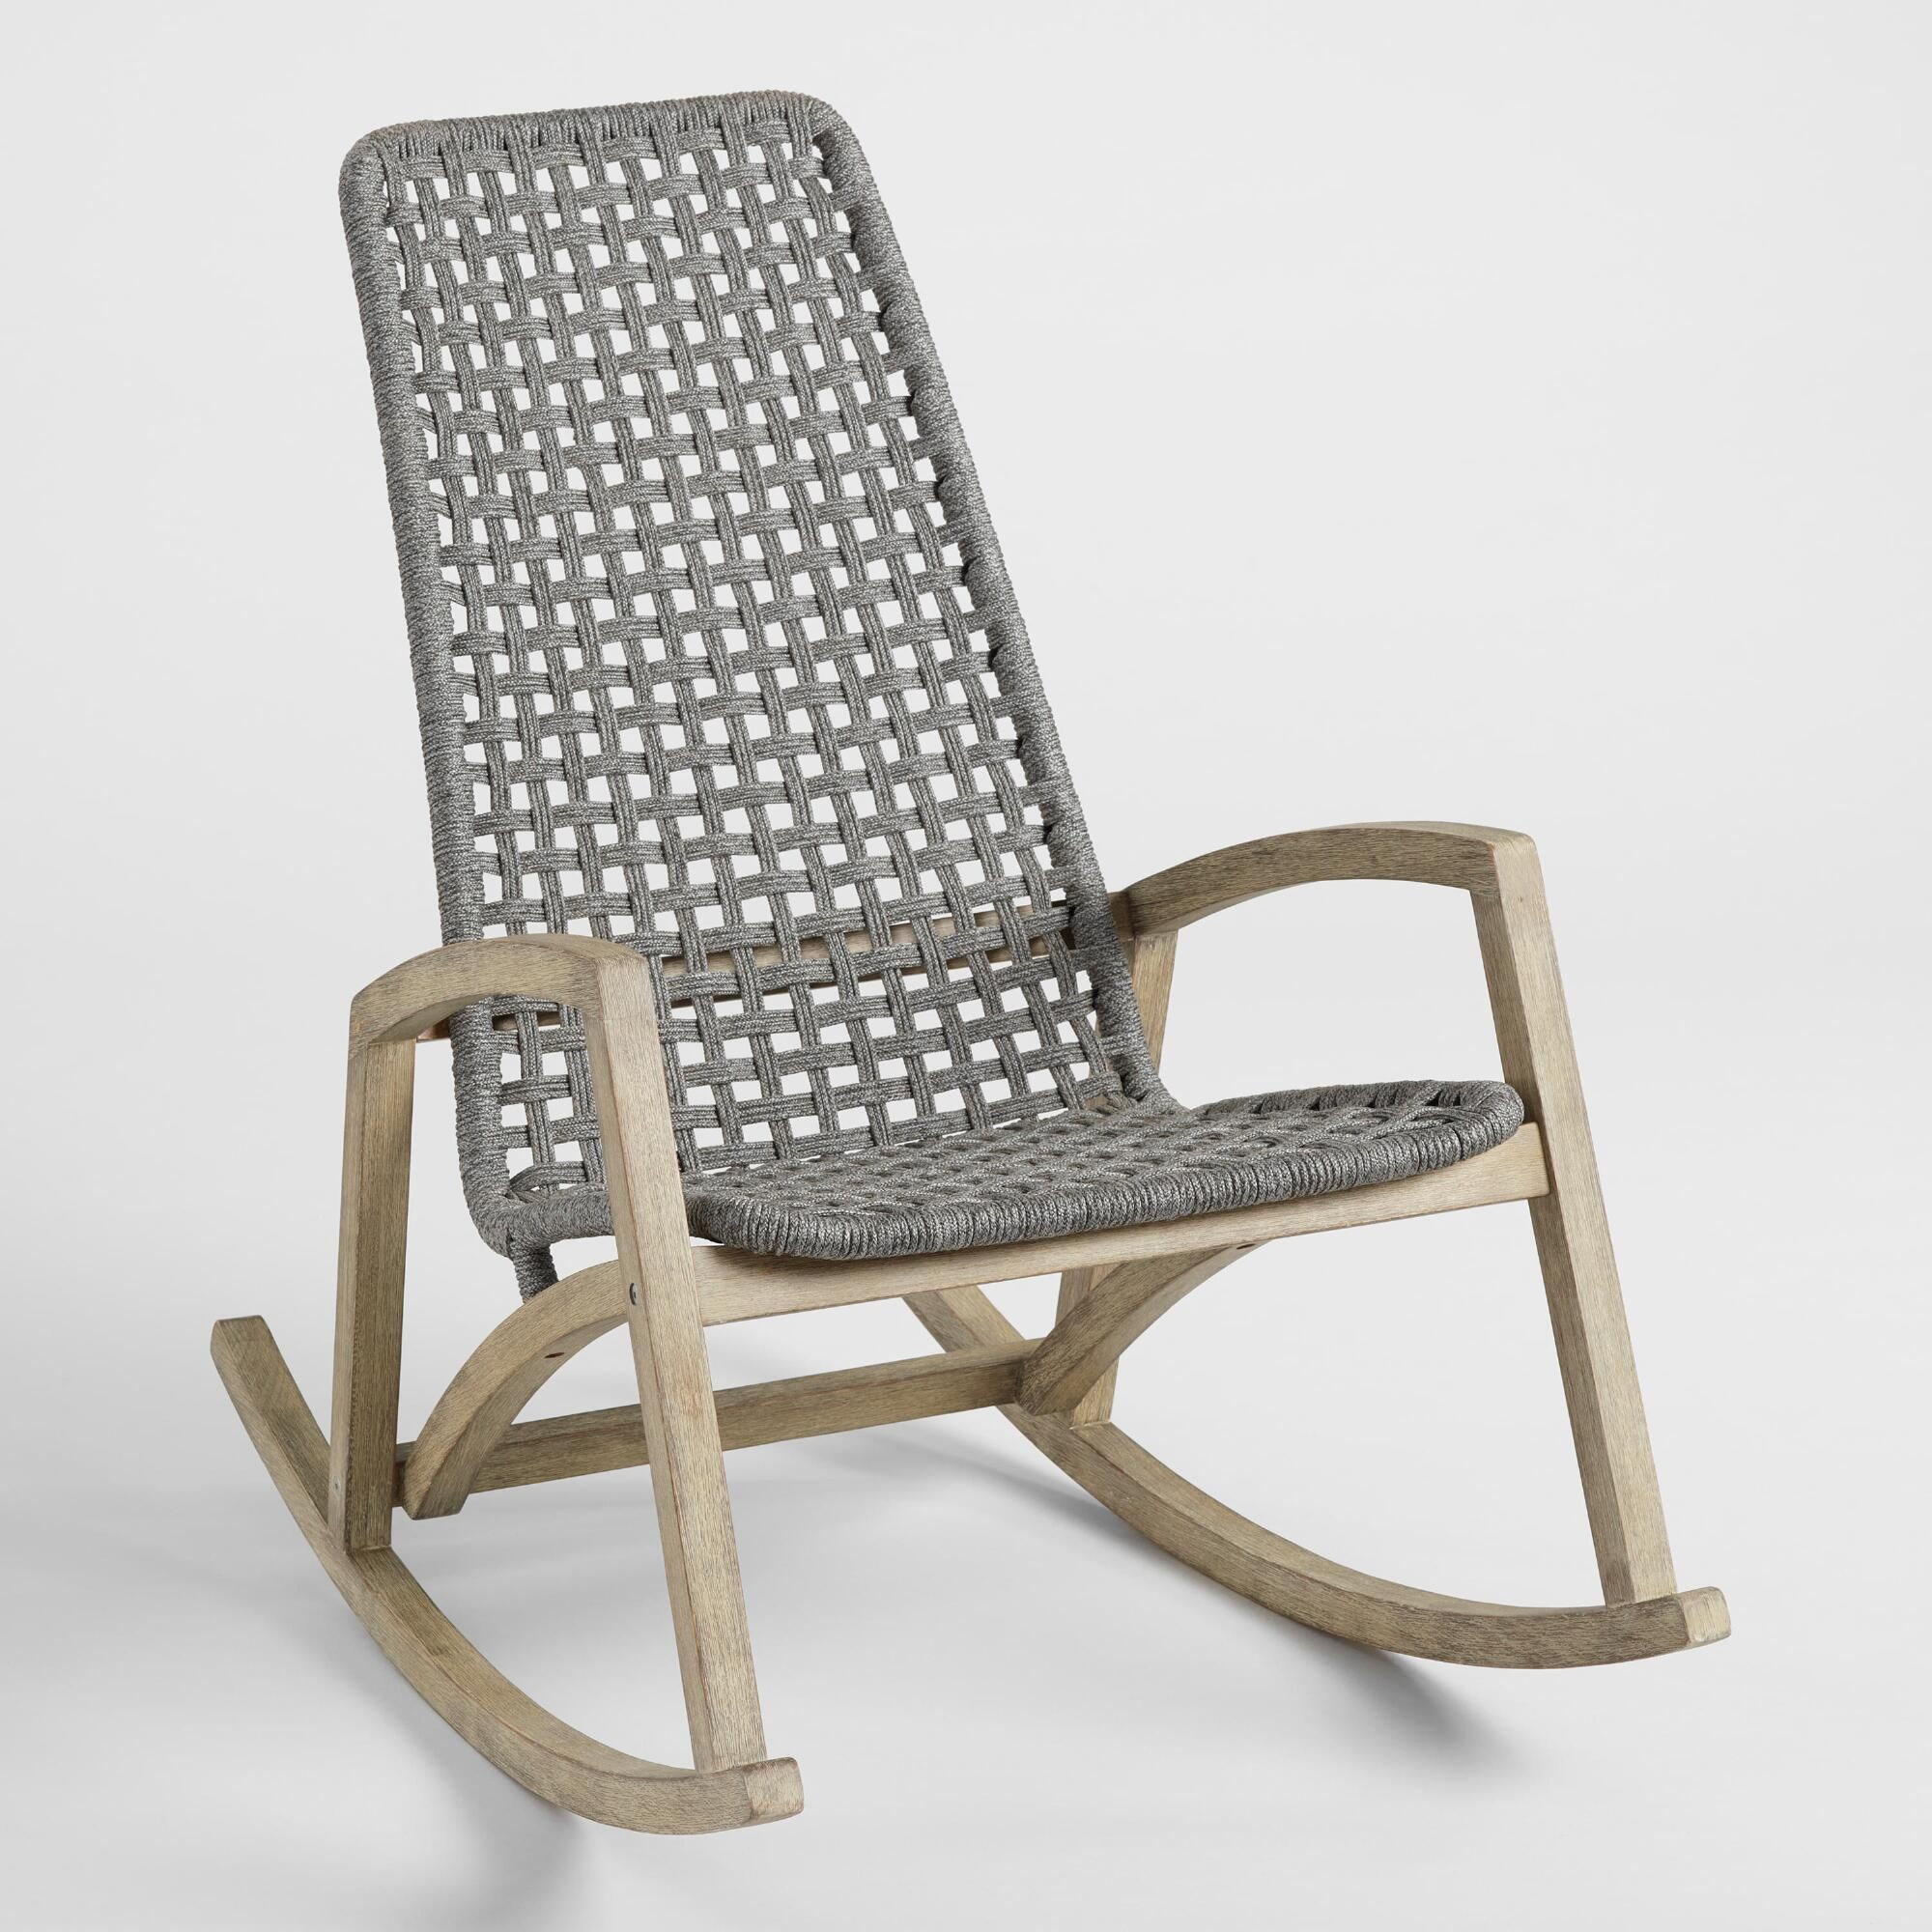 Gray Nautical Rope Rapallo Outdoor Patio Rocking Chair By